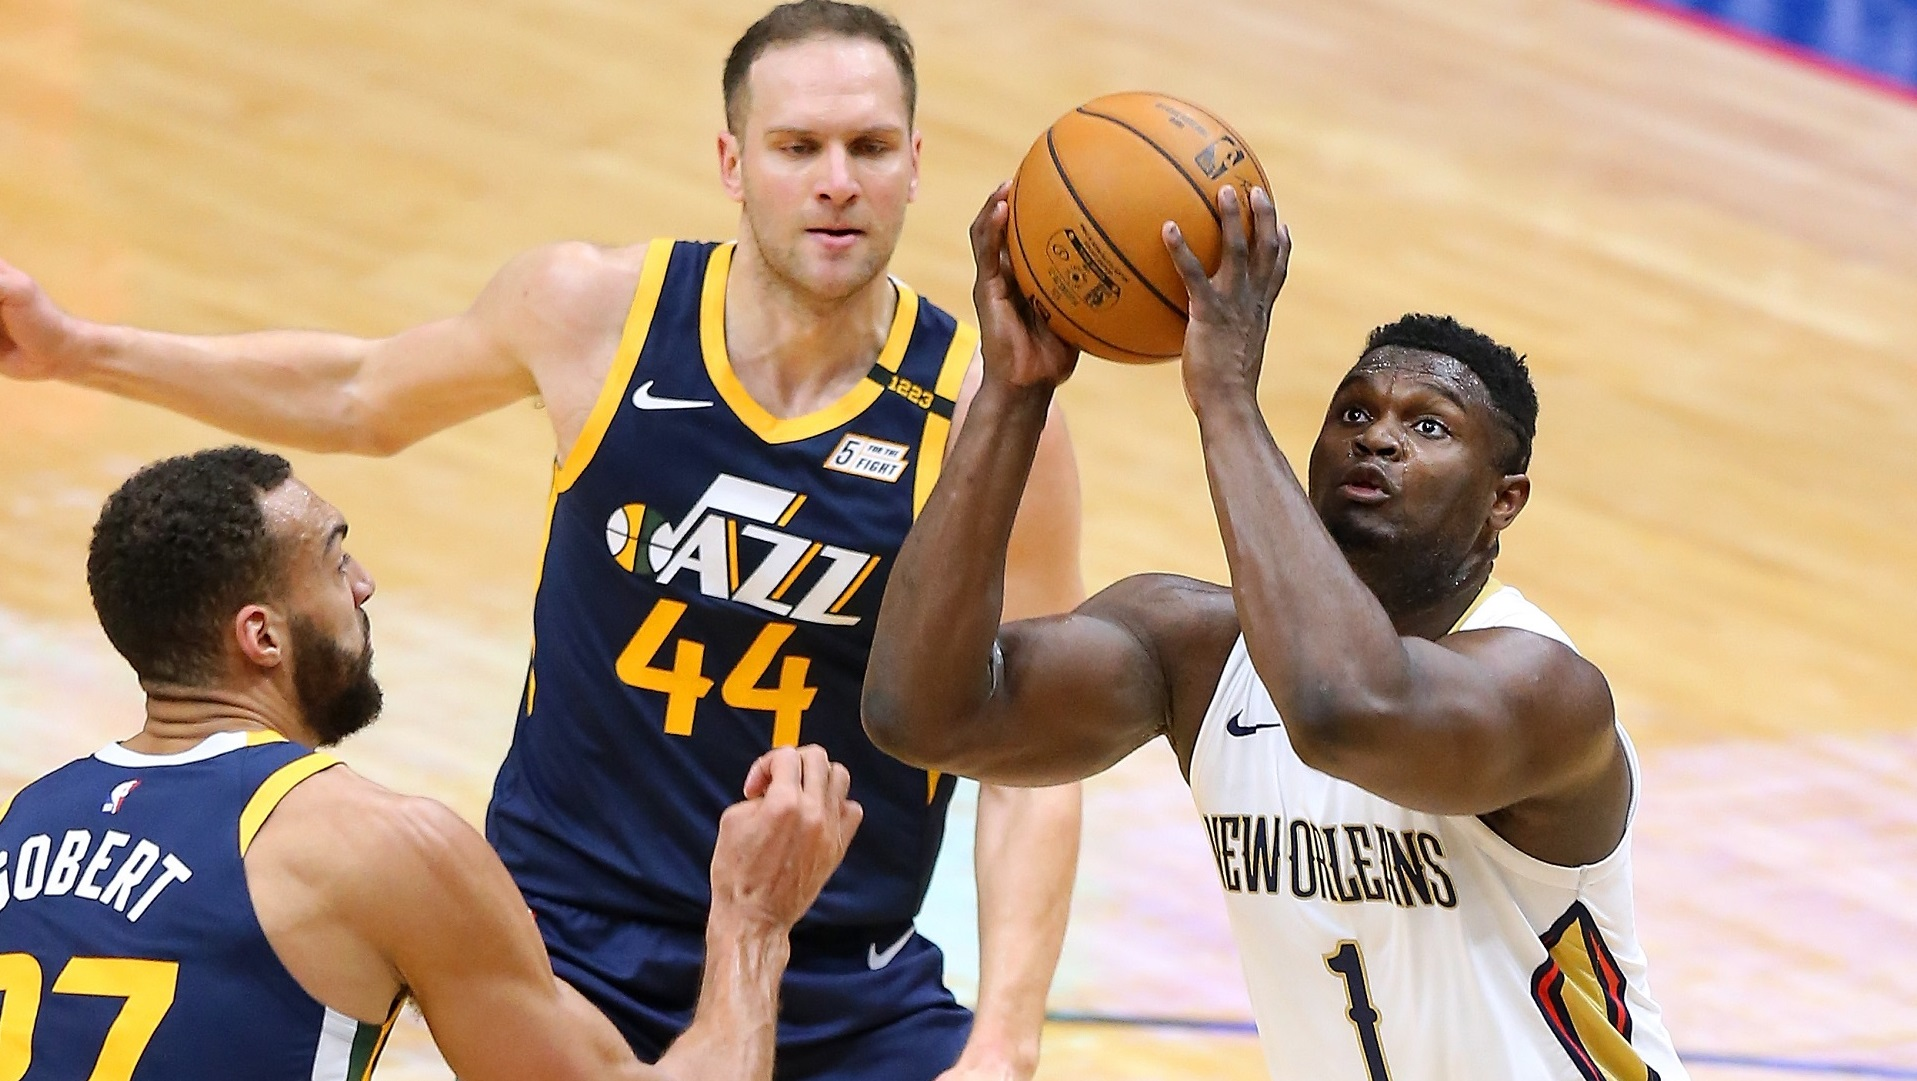 Pelicans coach hails Zion's 'incredible' 15-point quarter in Jazz upset